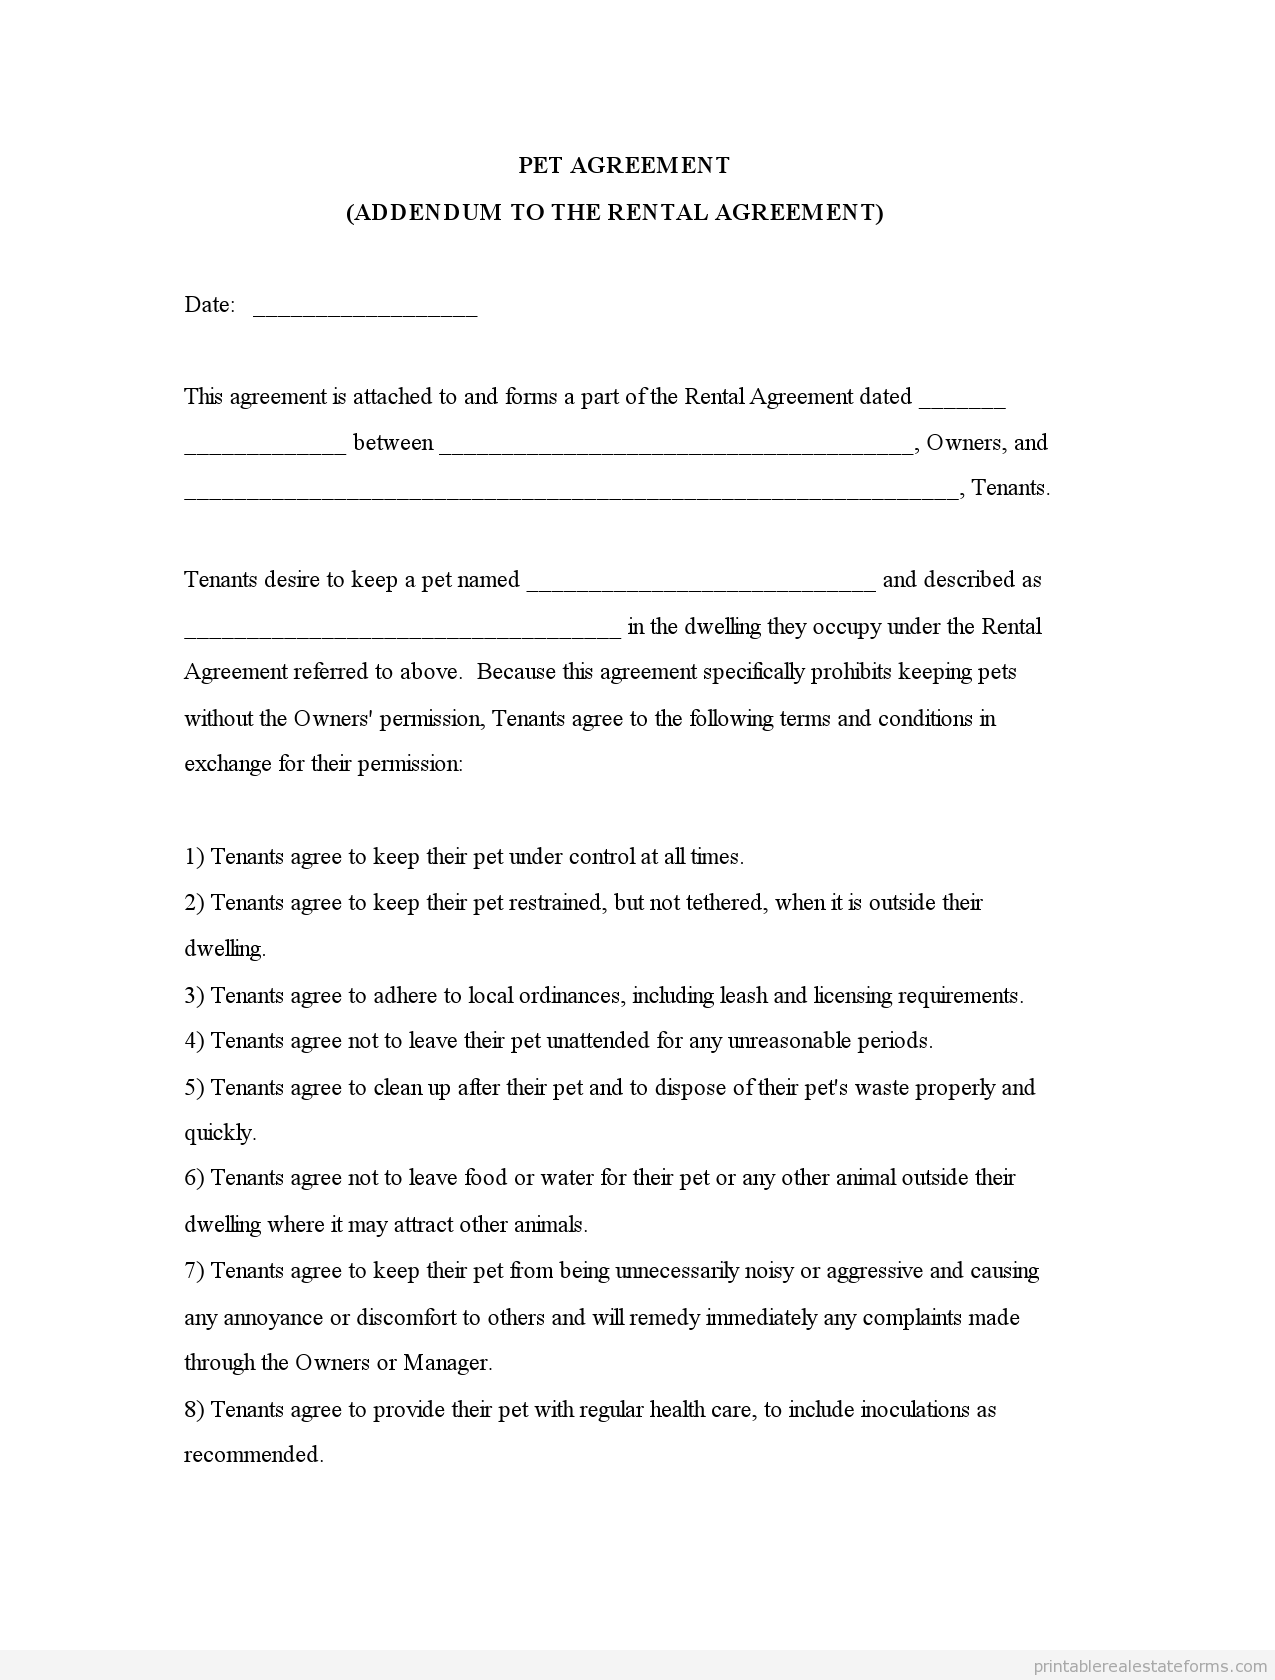 Sample Printable Pet Agreementm Addendum To The Rental Agreement